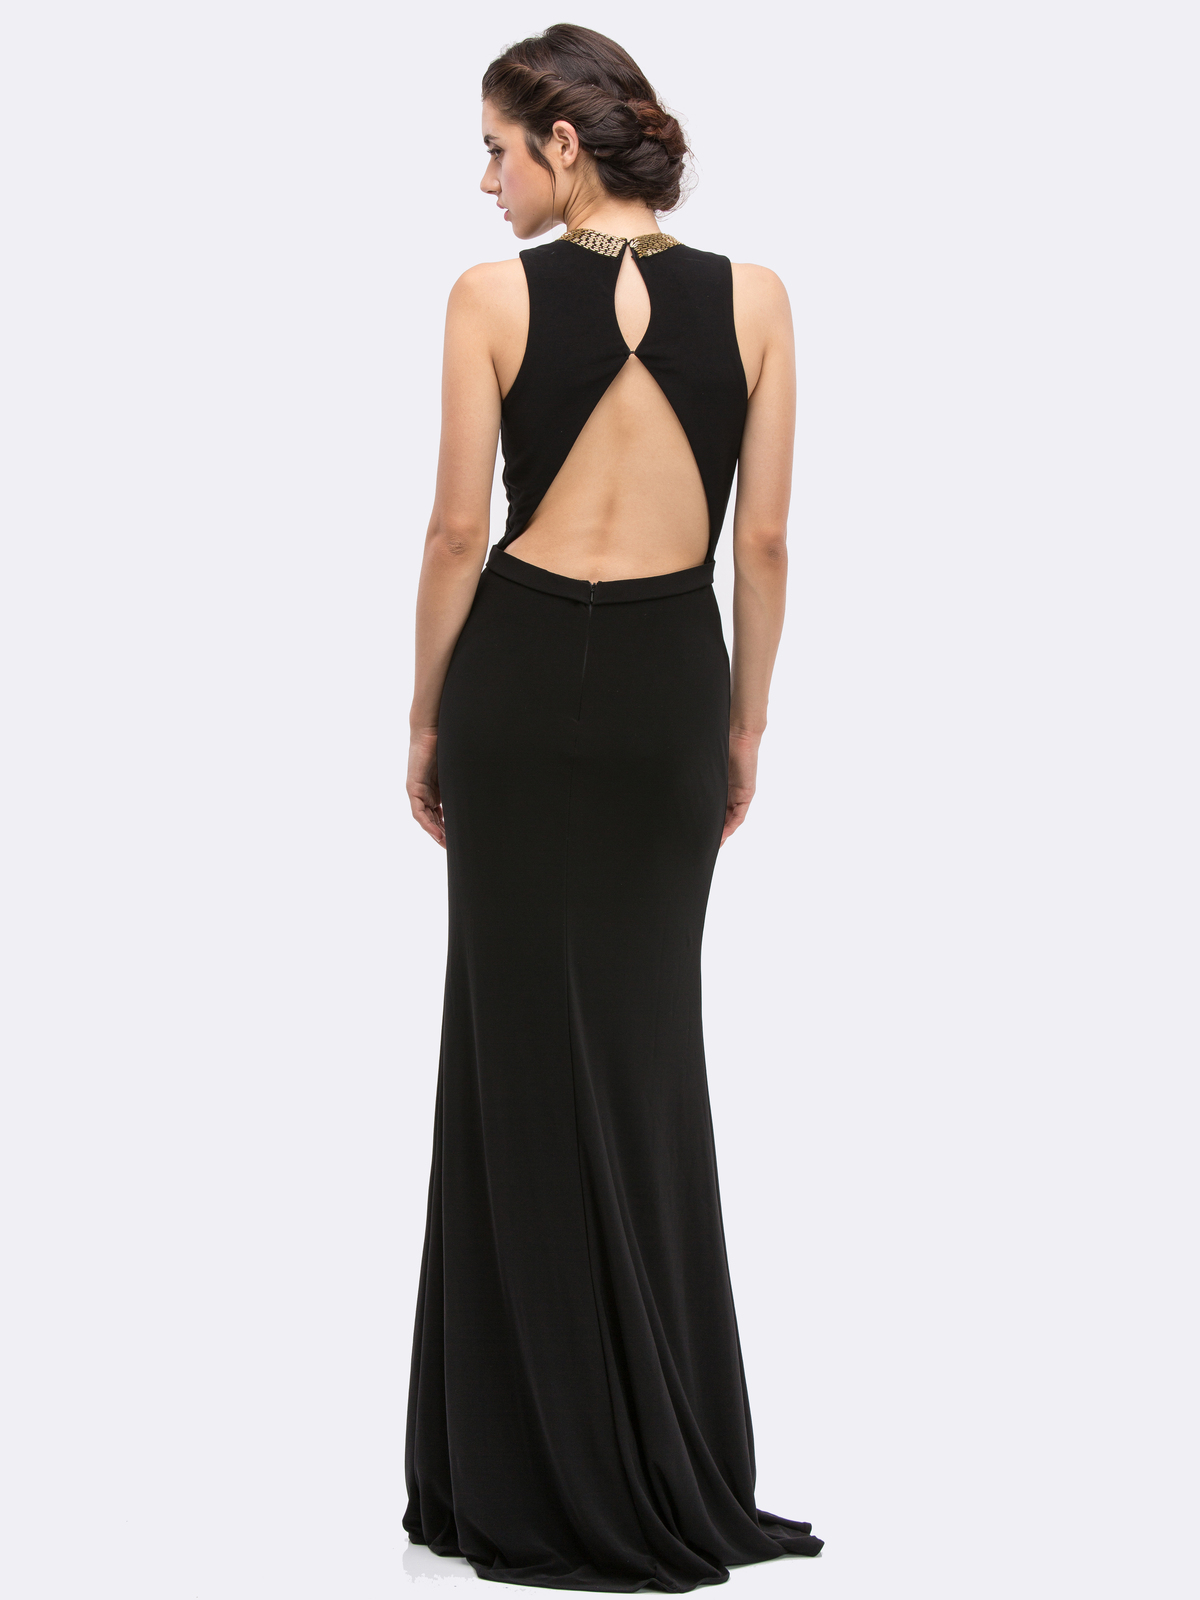 Black dress long formal - Collection Black Long Formal Dress Pictures The Fashions Of Paradise Collection Black Long Formal Dress Pictures The Fashions Of Paradise